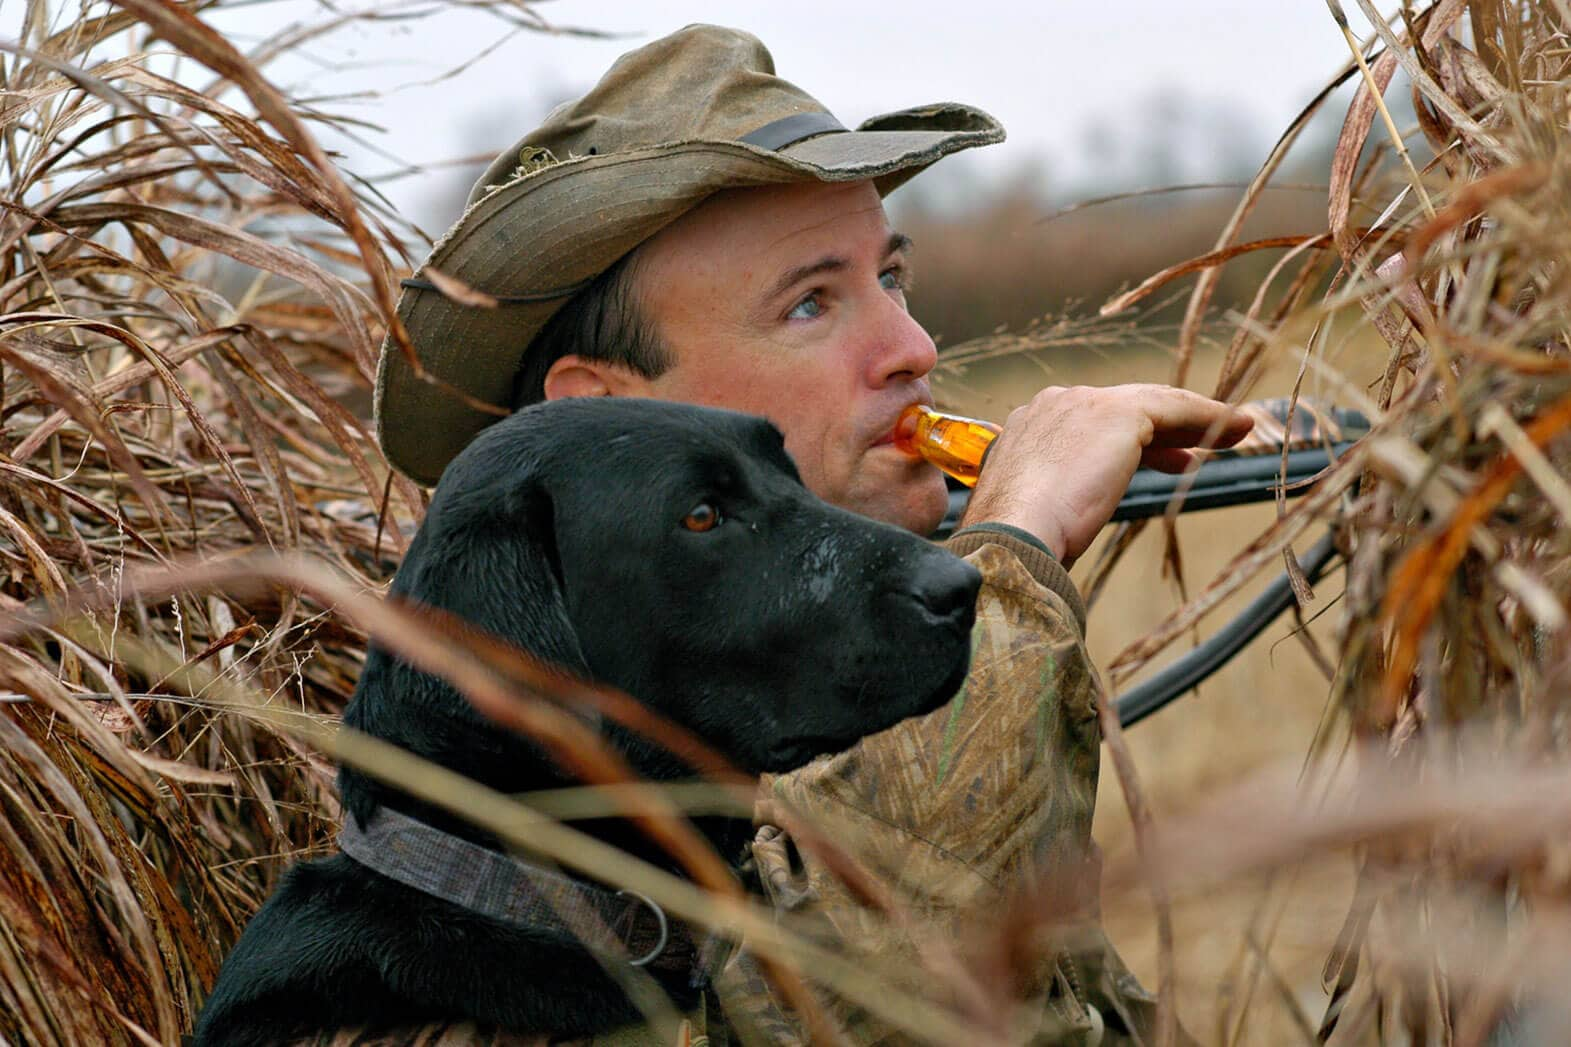 hunter using a duck call, and black dog